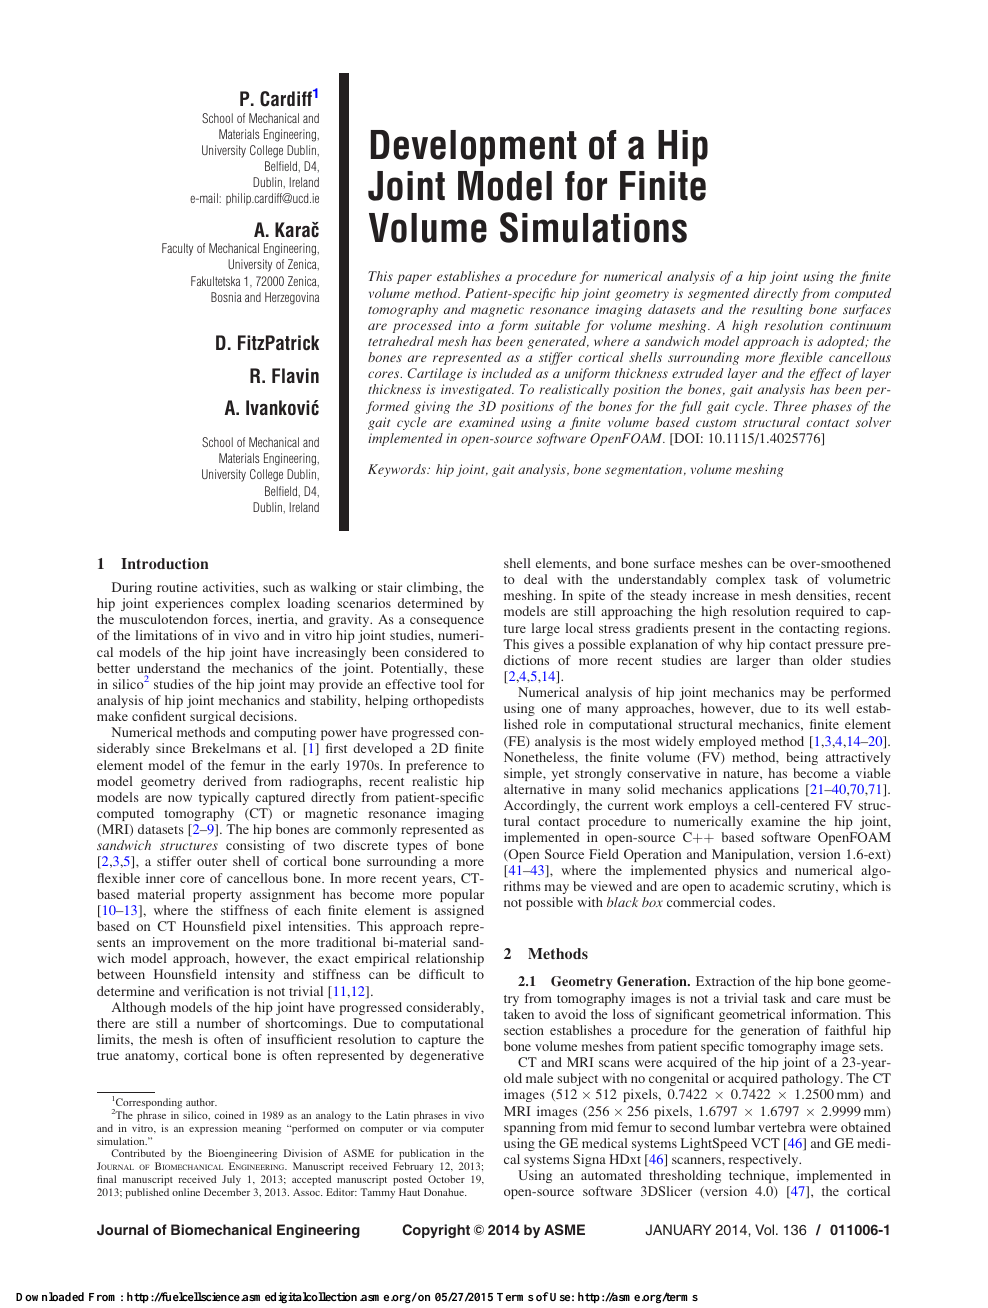 Development of a Hip Joint Model for Finite Volume